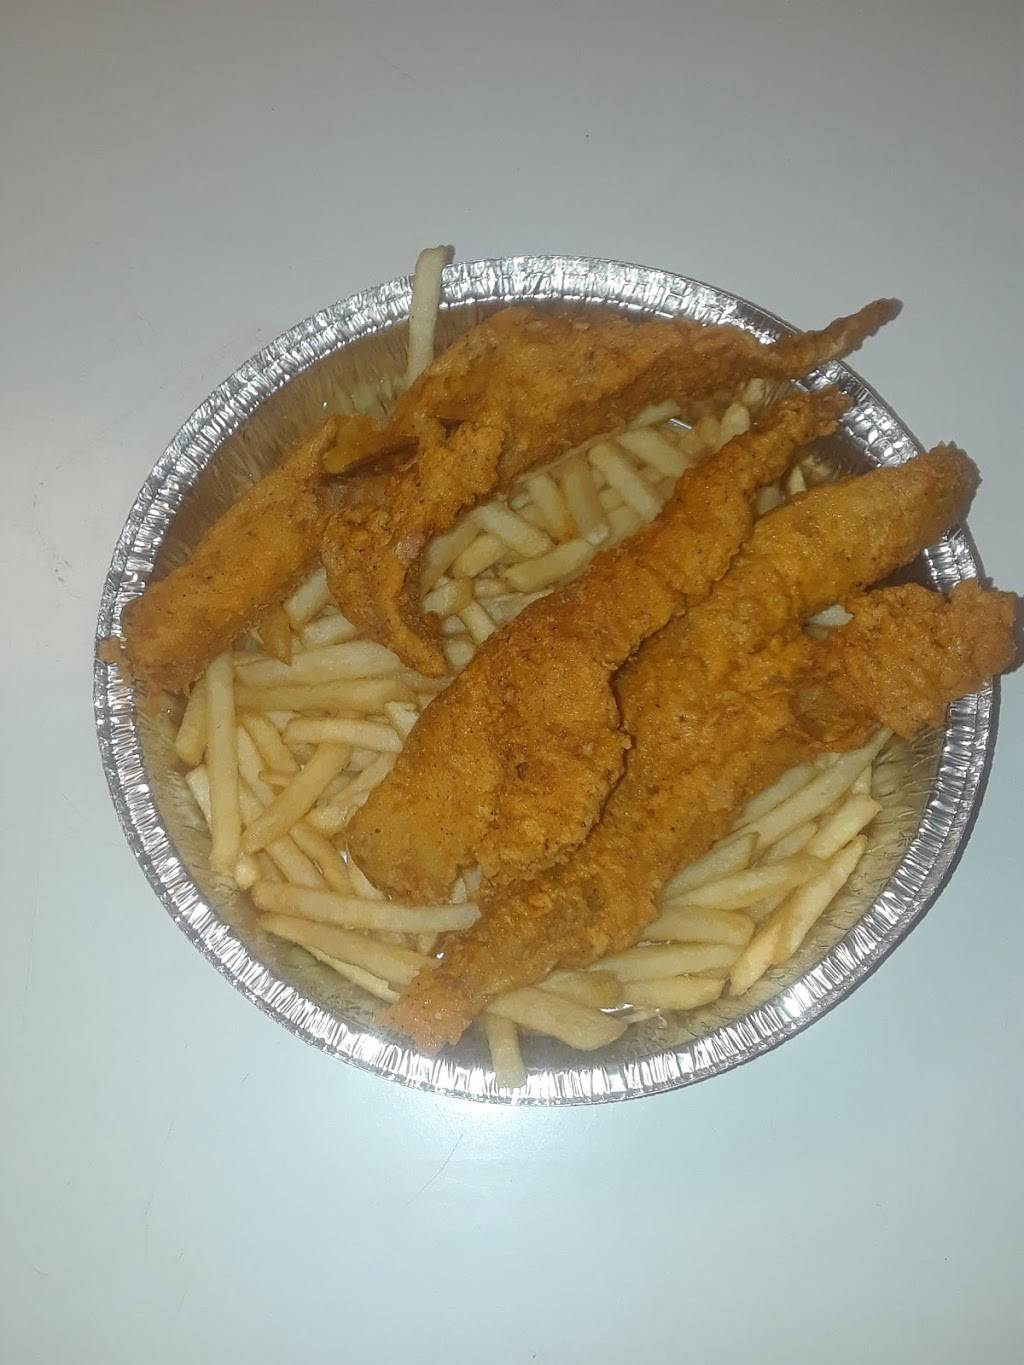 NYC Platters   restaurant   378 Queen Anne Rd, Teaneck, NJ 07666, USA   2015305774 OR +1 201-530-5774